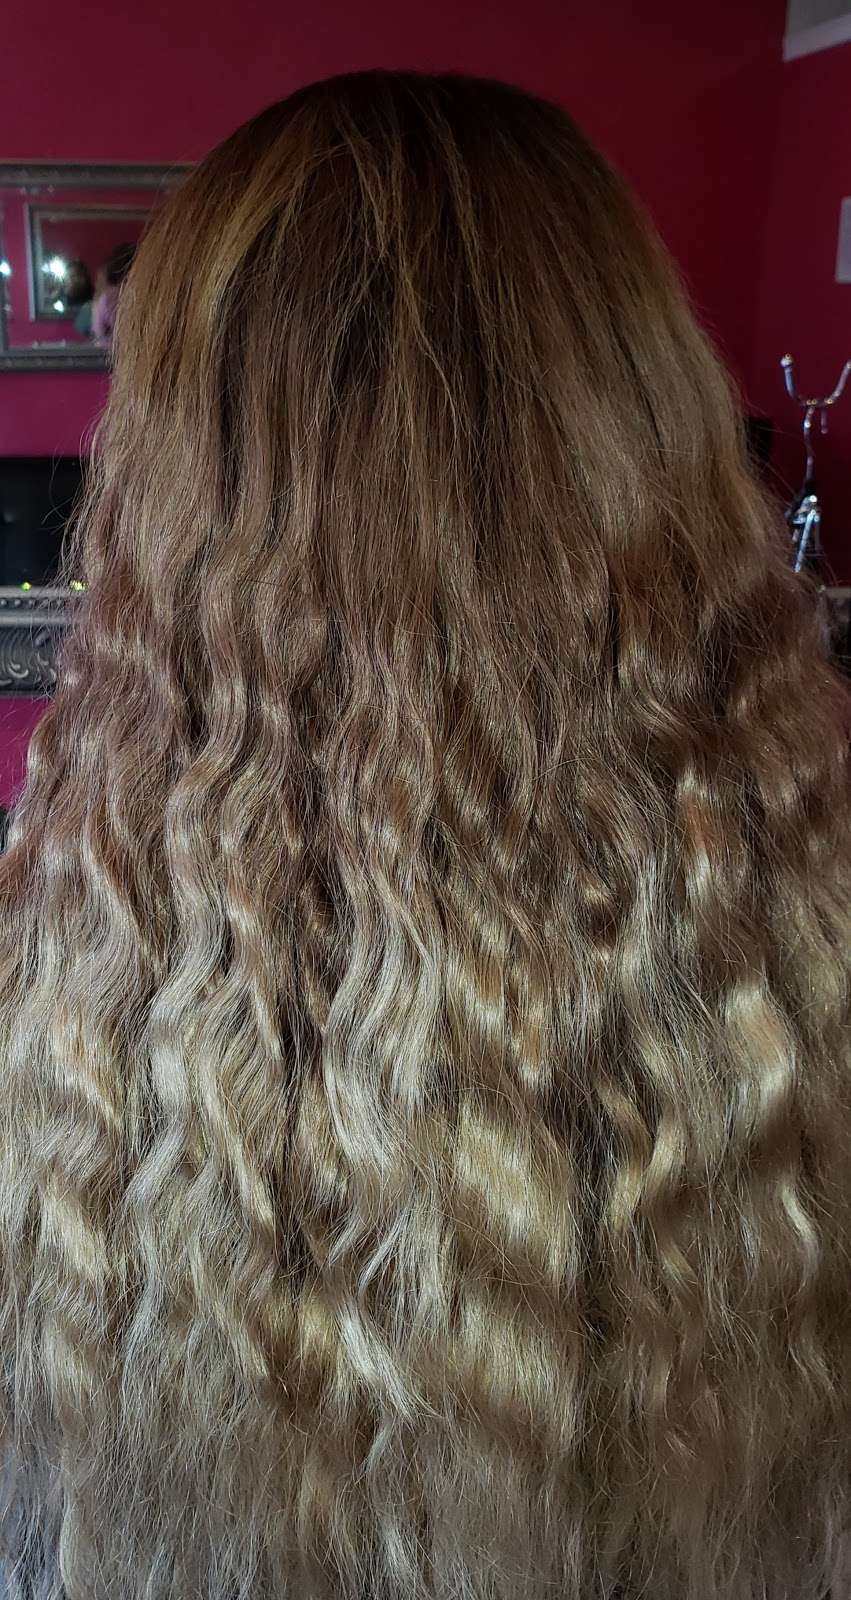 Ultimate Hair World - hair care    Photo 7 of 10   Address: 16 Molter Pl, Bloomfield, NJ 07003, USA   Phone: (973) 622-6900